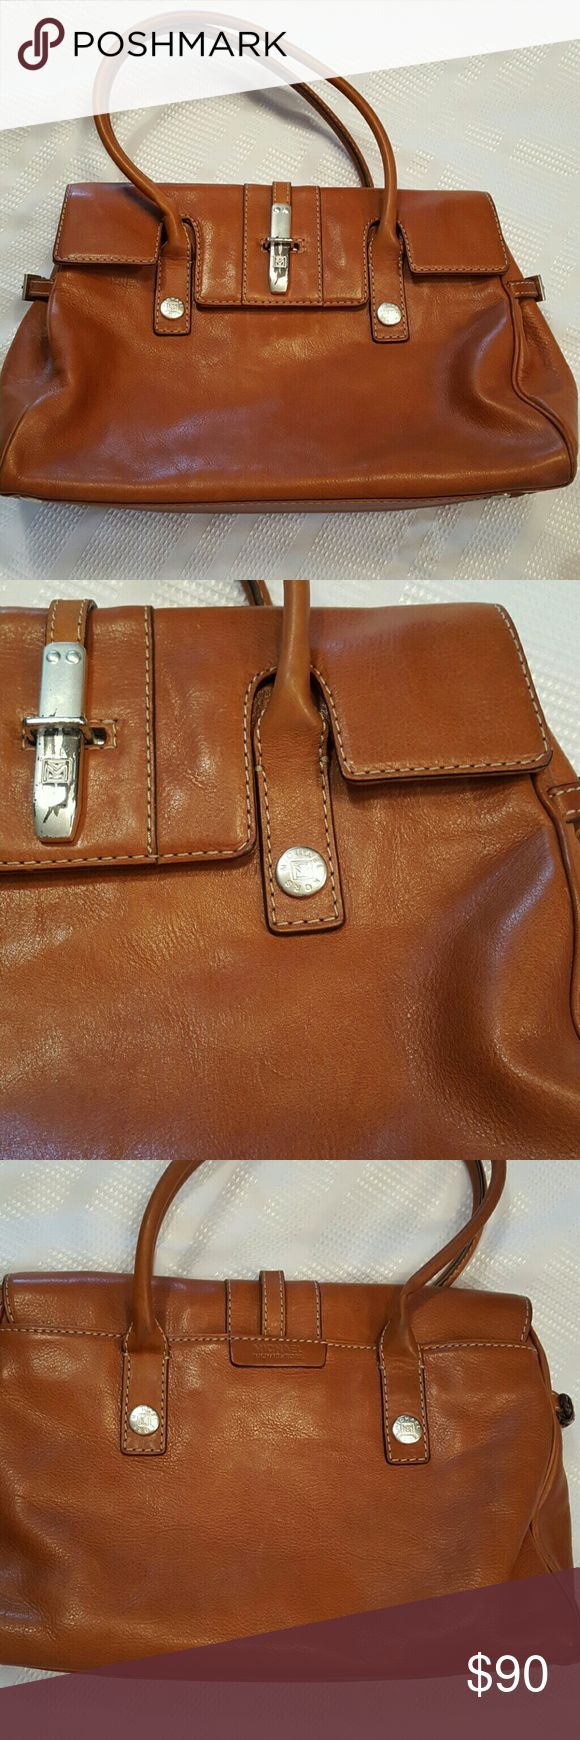 "VINTAGEMichael Kors Leather Shoulder Bag Gorgeous Tan/Brown Supple Leather Purse from Michael Kors.  Authentic and leather us gorgeous.  EUC overall. A few minor marks on the leather but barely noticeable.  Metal sliding clasp has tarnish. That is where the ""wear"" is.  Inside is a gorgeous linen lining in perfect shape.  3 sections, one zippered and Interior zipper pocket. 1 outer pocket.  Smoke free, pet free home. 6in strap drop.  Adjustable buckles on sides. Michael Kors Bags"